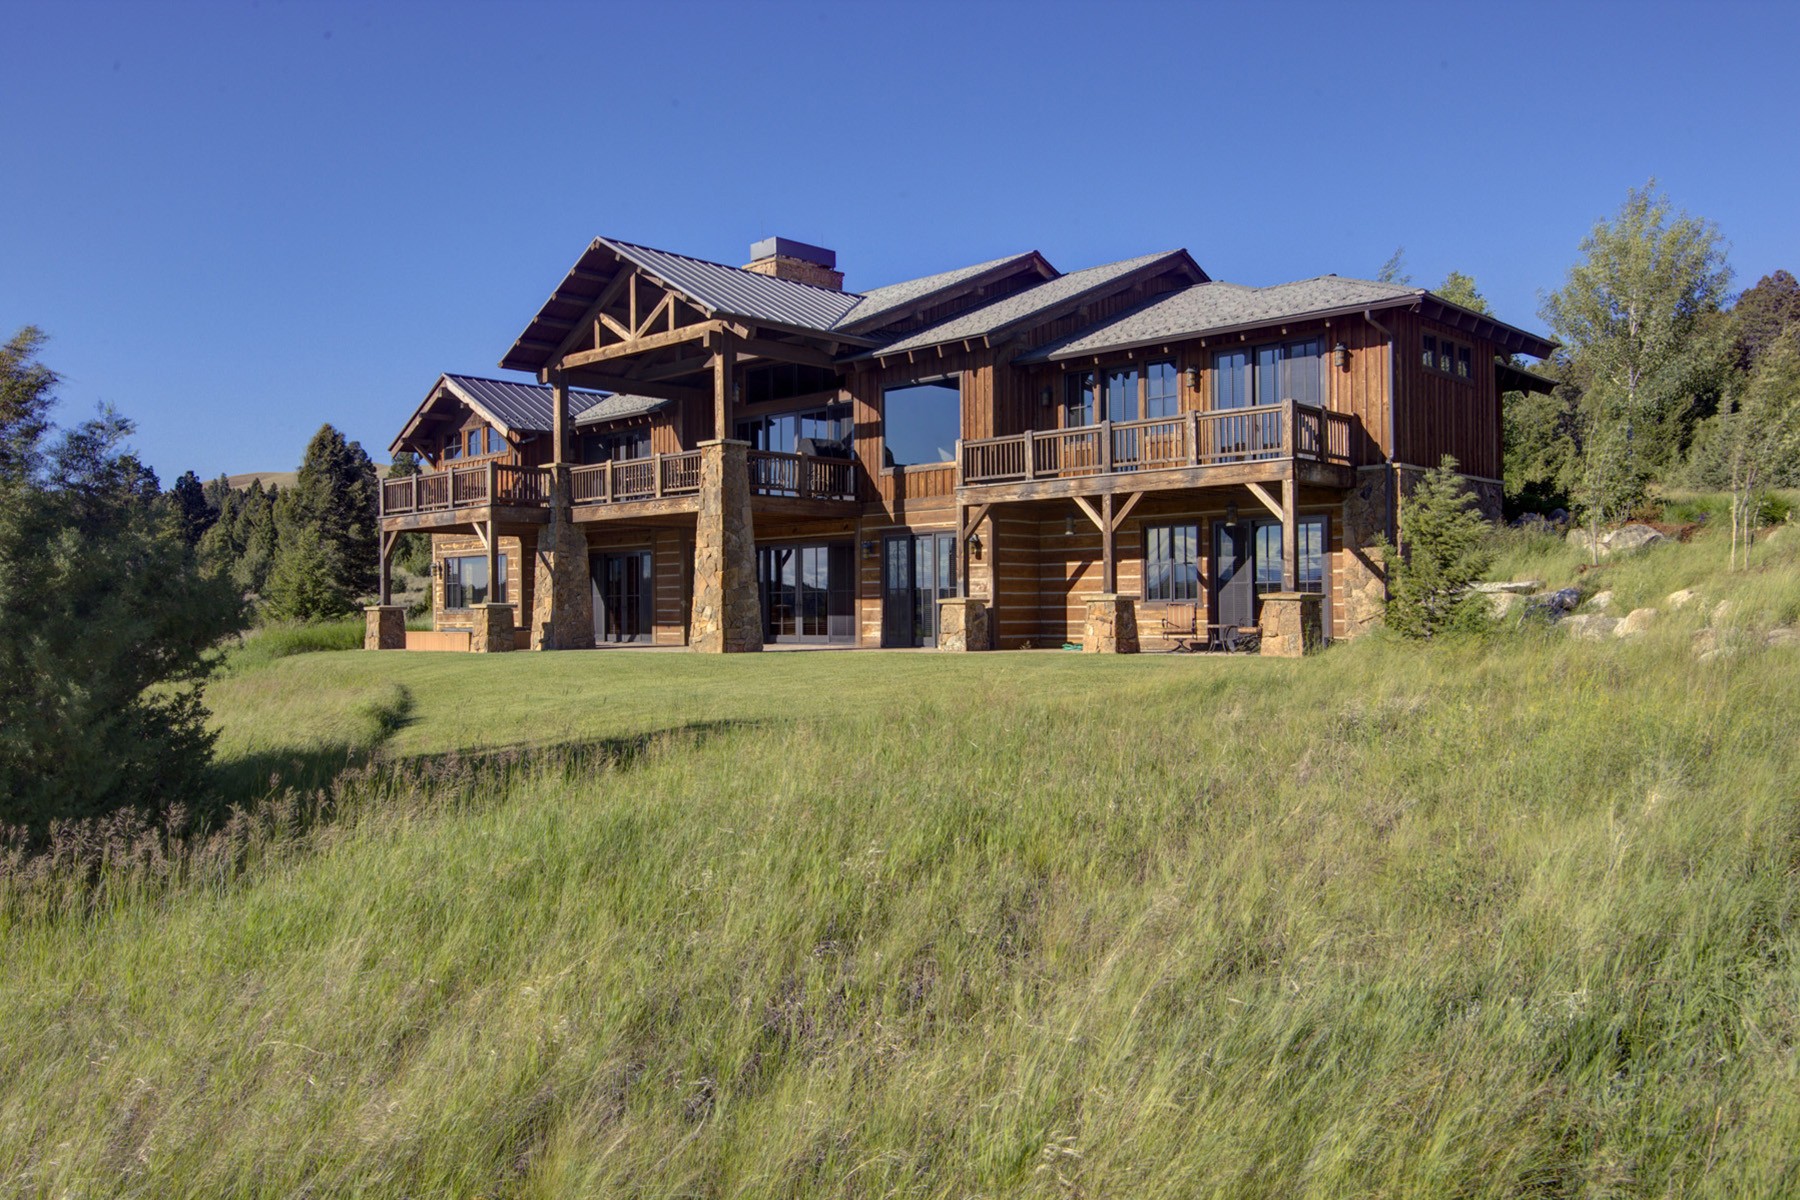 Additional photo for property listing at 590 Dry Gulch Way , Deer Lodge, MT 59722 590  Dry Gulch Way Deer Lodge, Montana 59722 United States